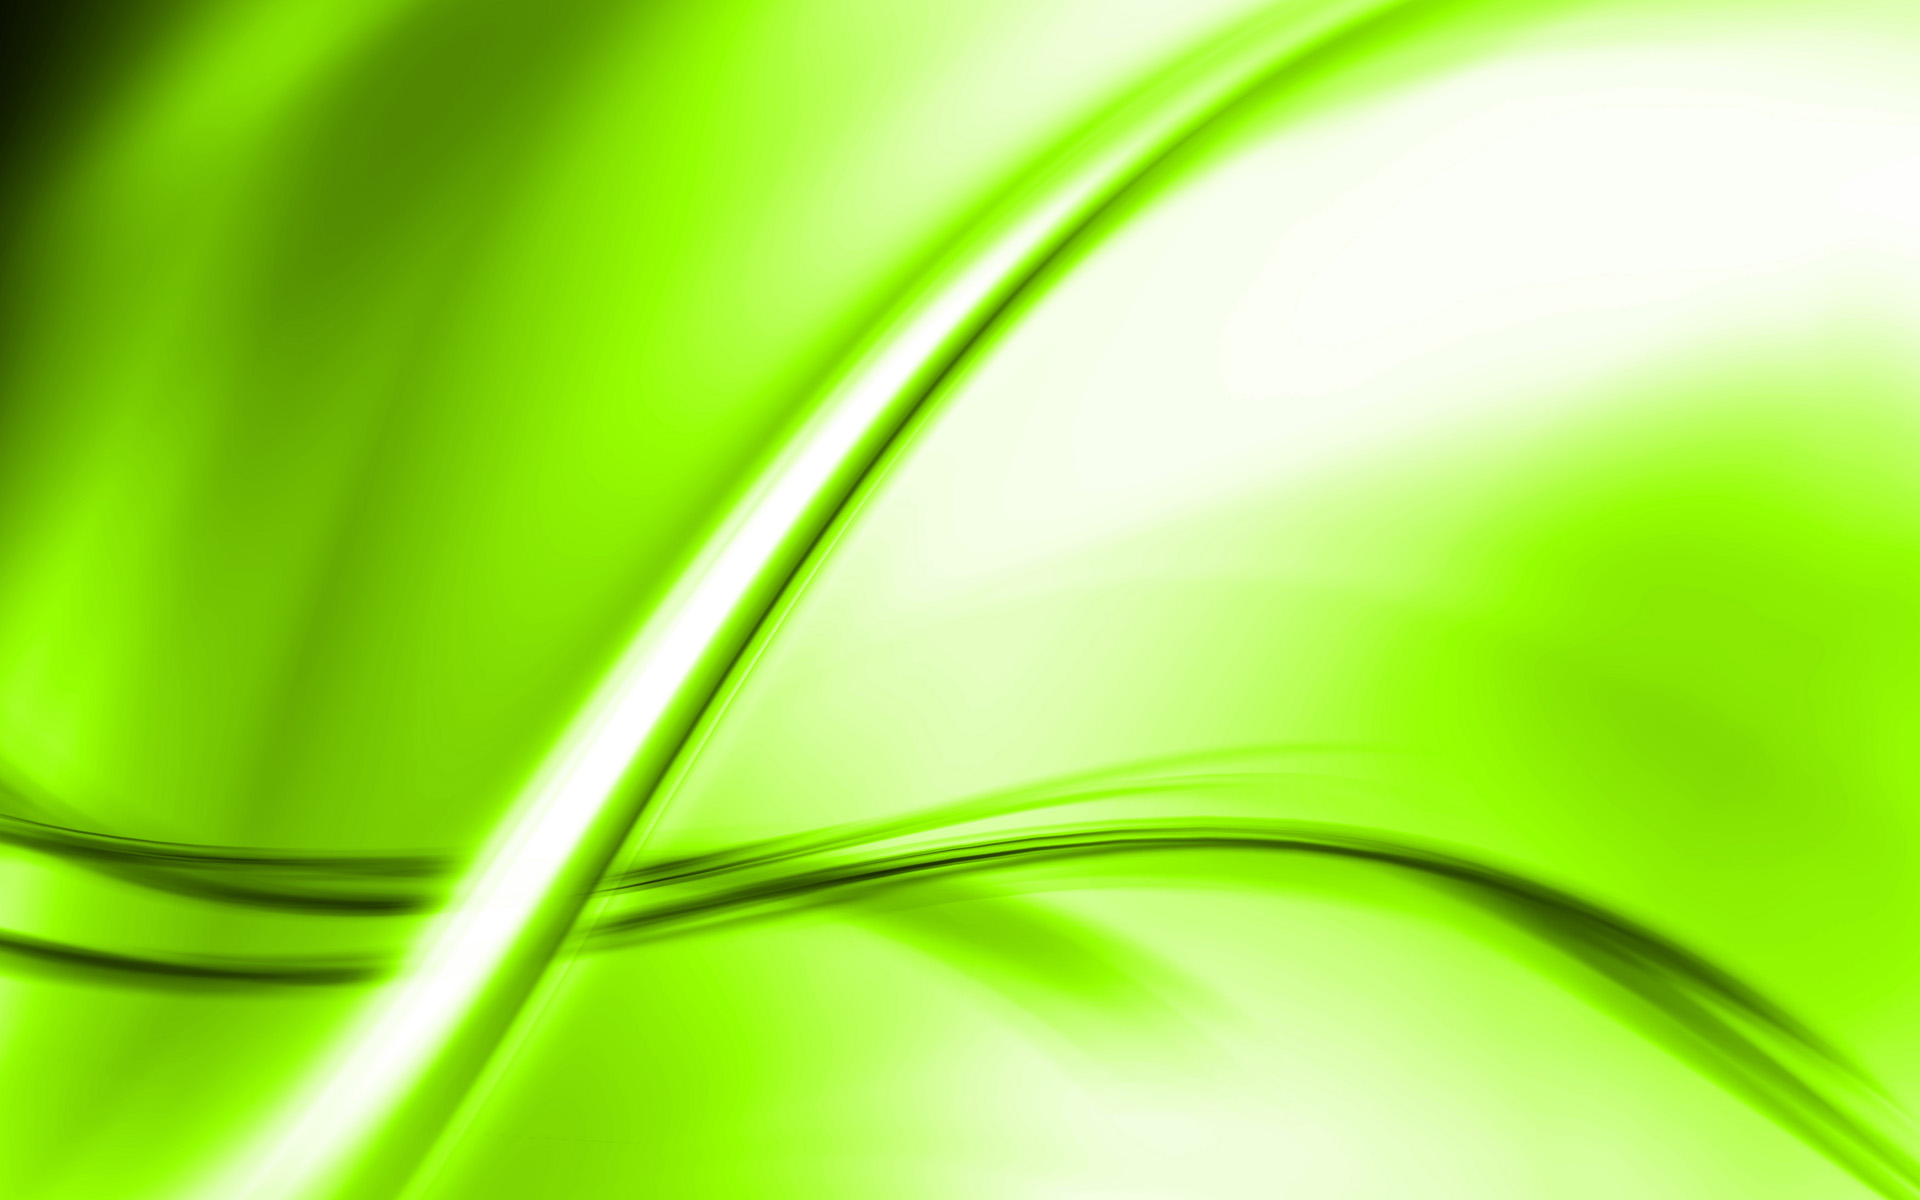 Light Green Picture